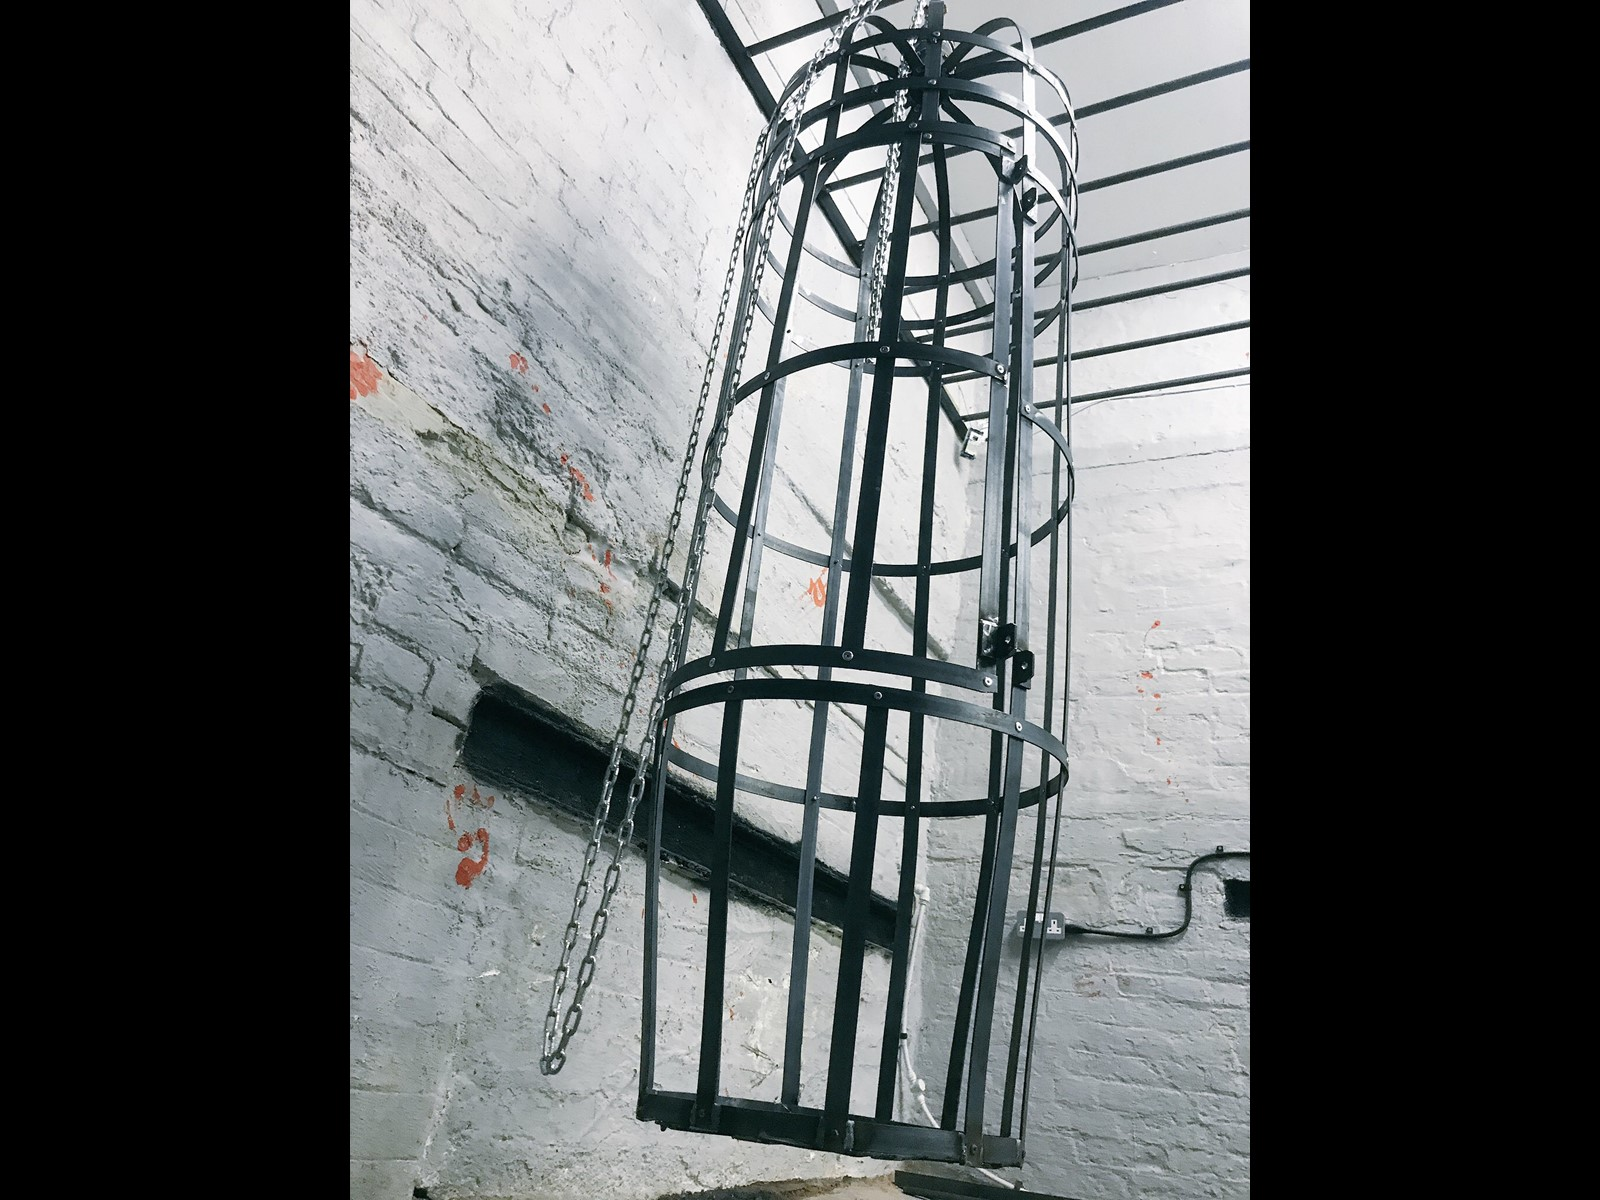 Historical Torture Medieval Gibbet Punishment Celestial Studios Dungeon Hire